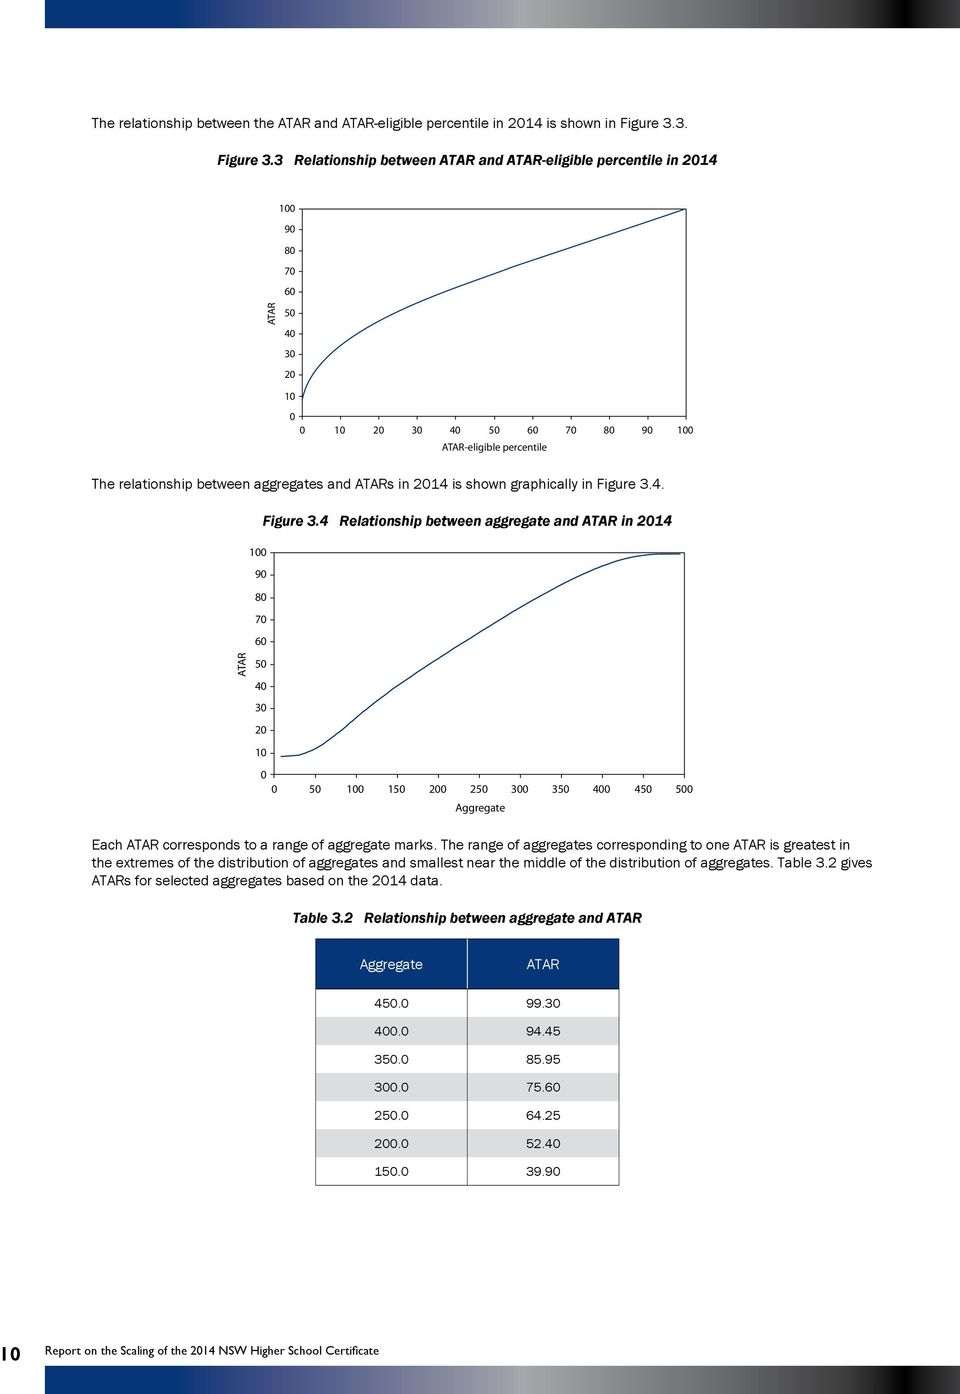 3 Relationship between ATAR and ATAR-eligible percentile in 2014 100 90 80 70 60 ATAR 50 40 30 20 10 0 0 10 20 30 40 50 60 70 80 90 100 ATAR-eligible percentile The relationship between aggregates